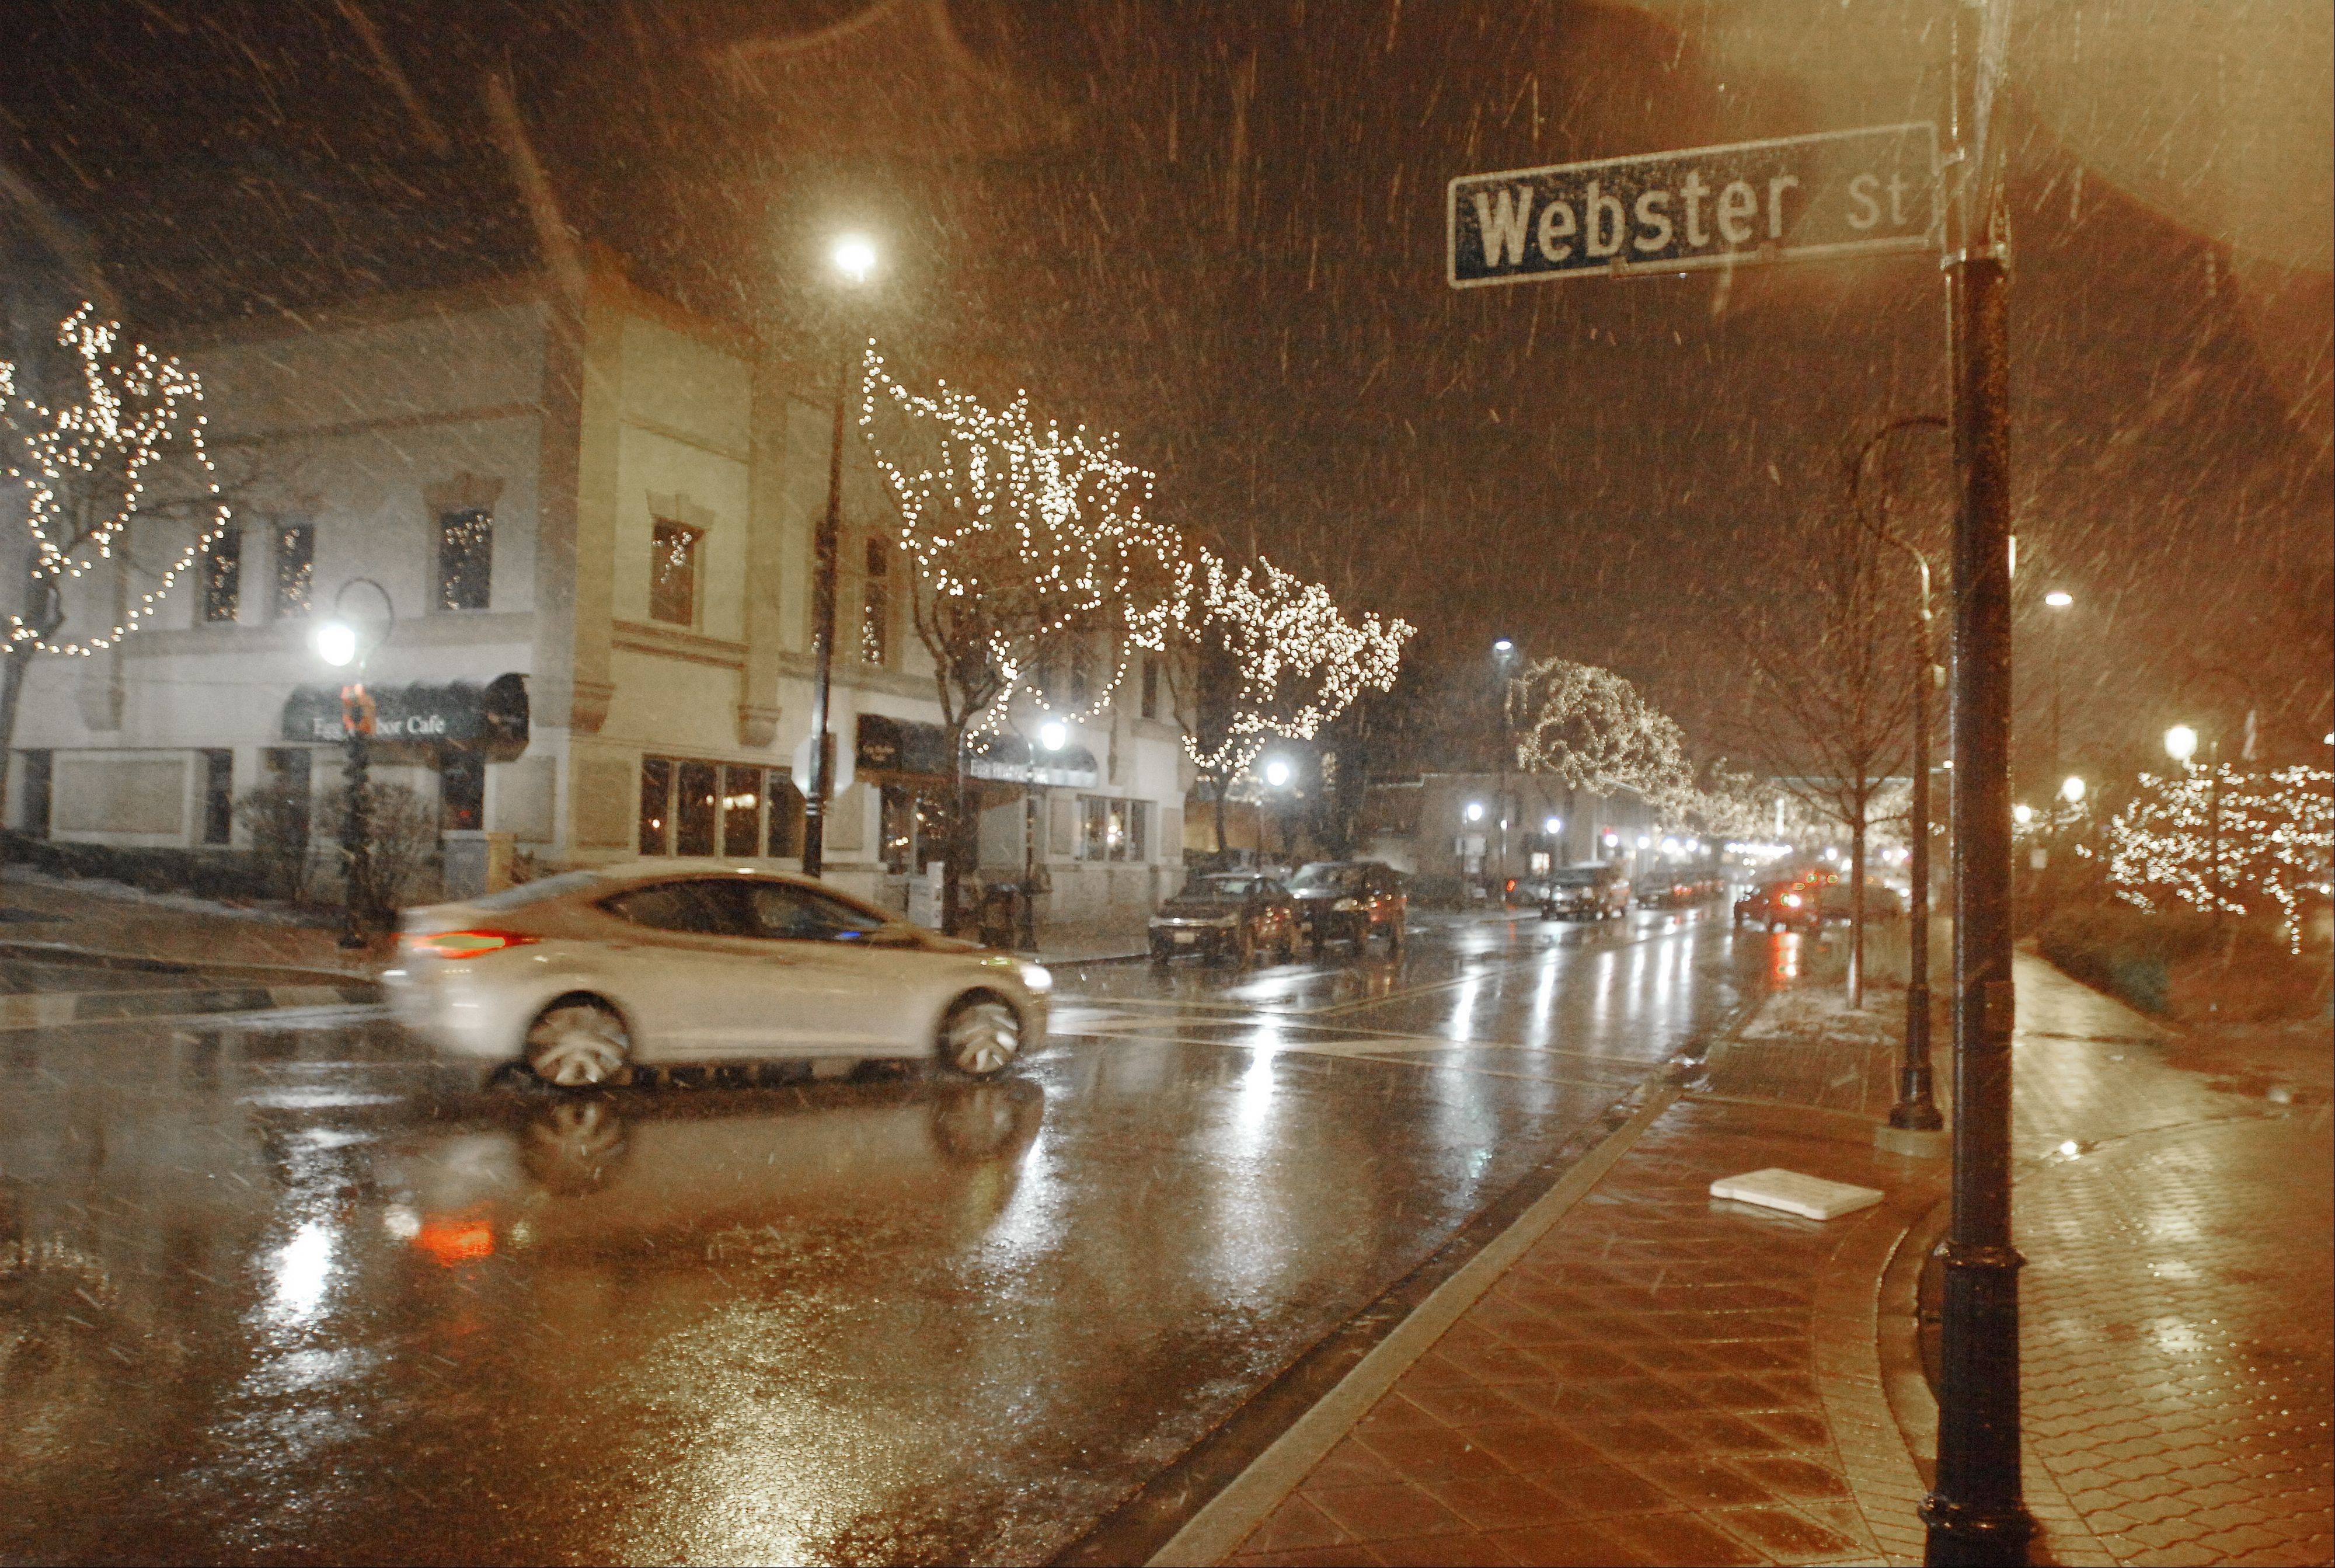 A mixture of wet snow and rain falls at the intersection of Jefferson and Webster in Naperville Thursday evening. This is the first snowfall of the season.